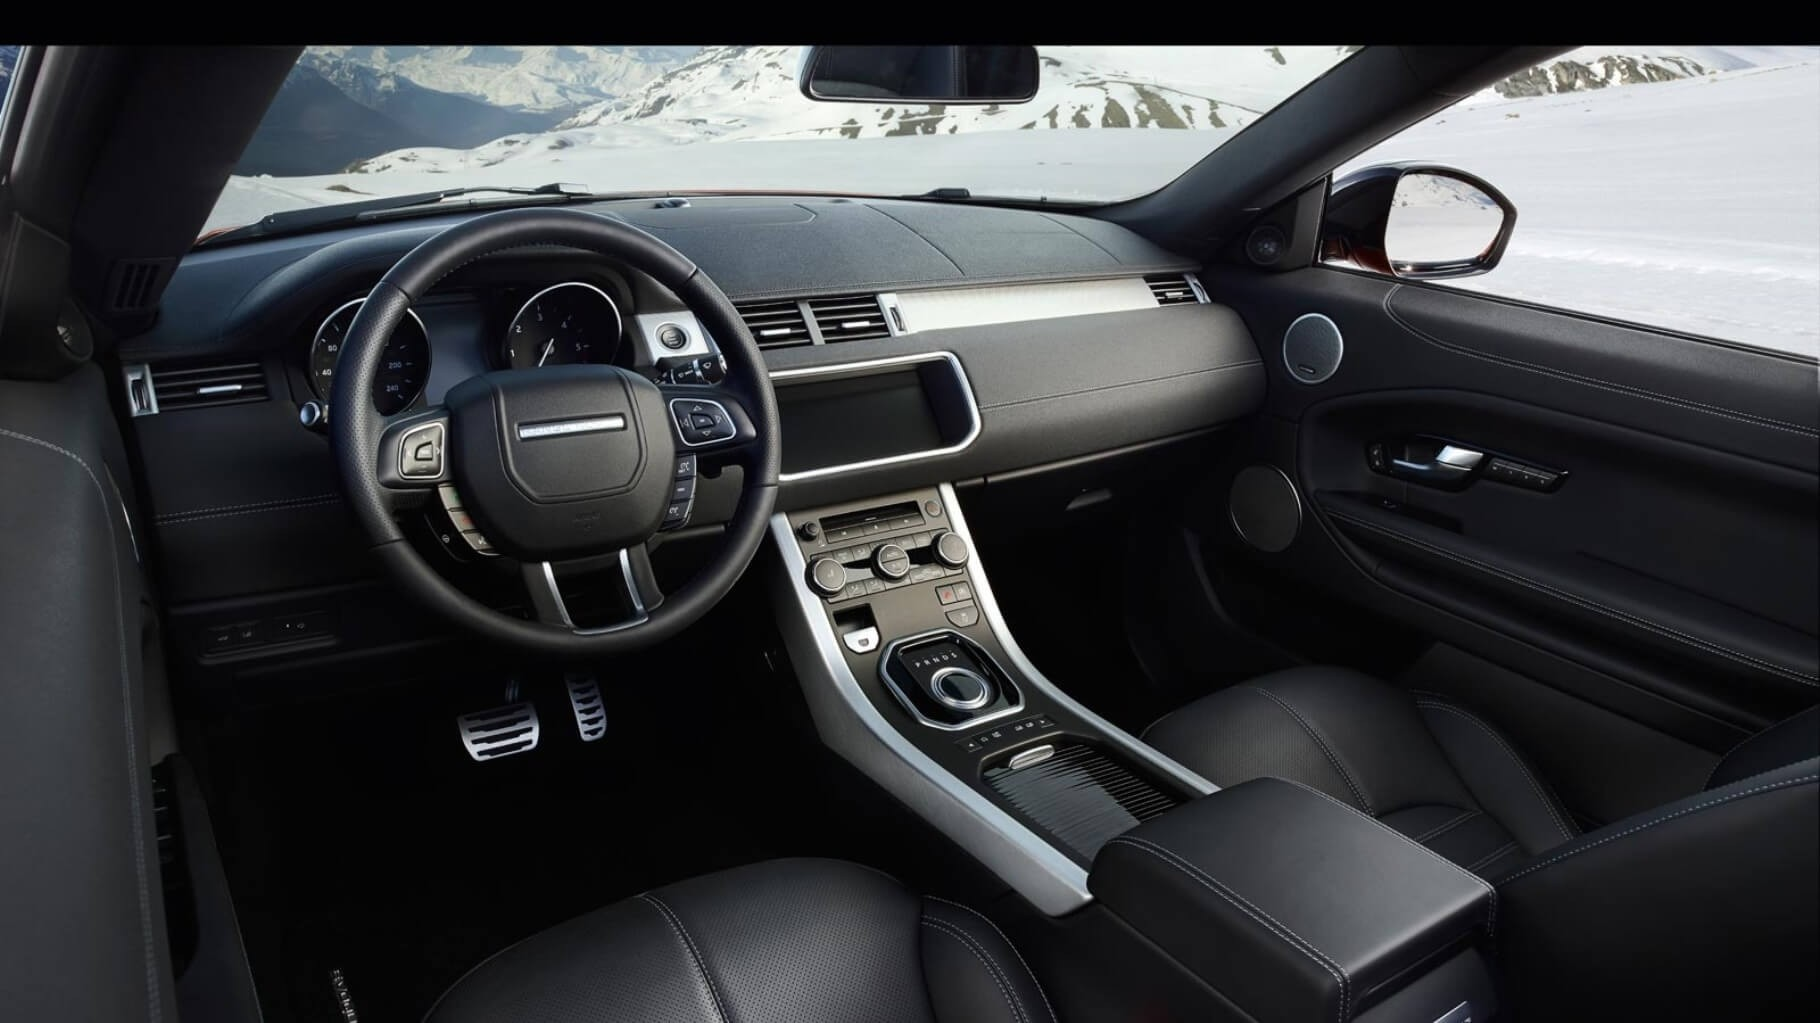 2017 Land Rover Range Rover Evoque Convertible Interior Technology Features